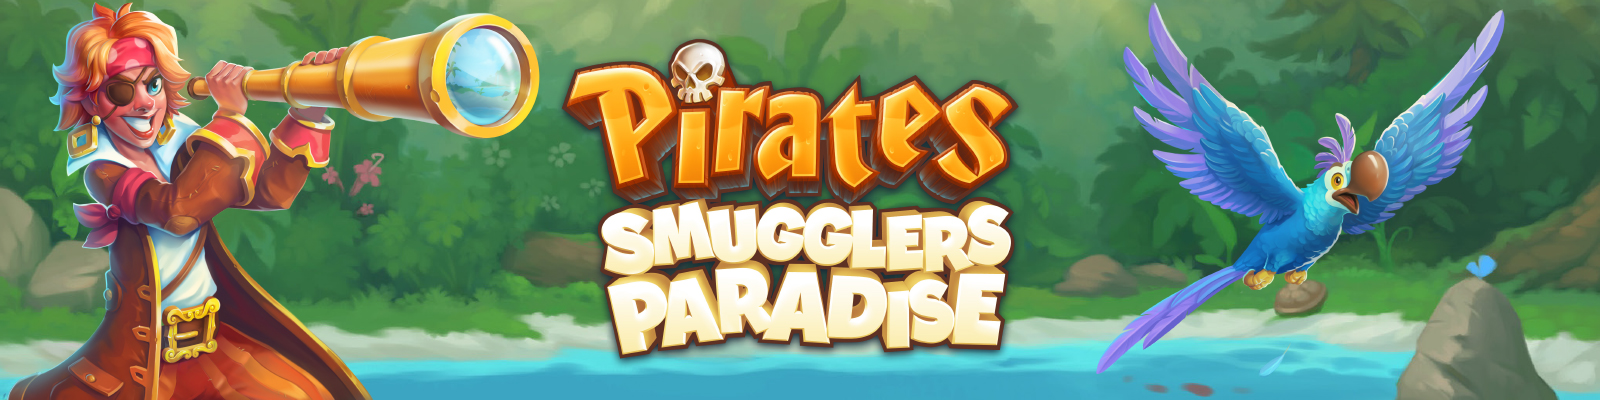 Pirates: Smugglers Paradise by Yggdrasil